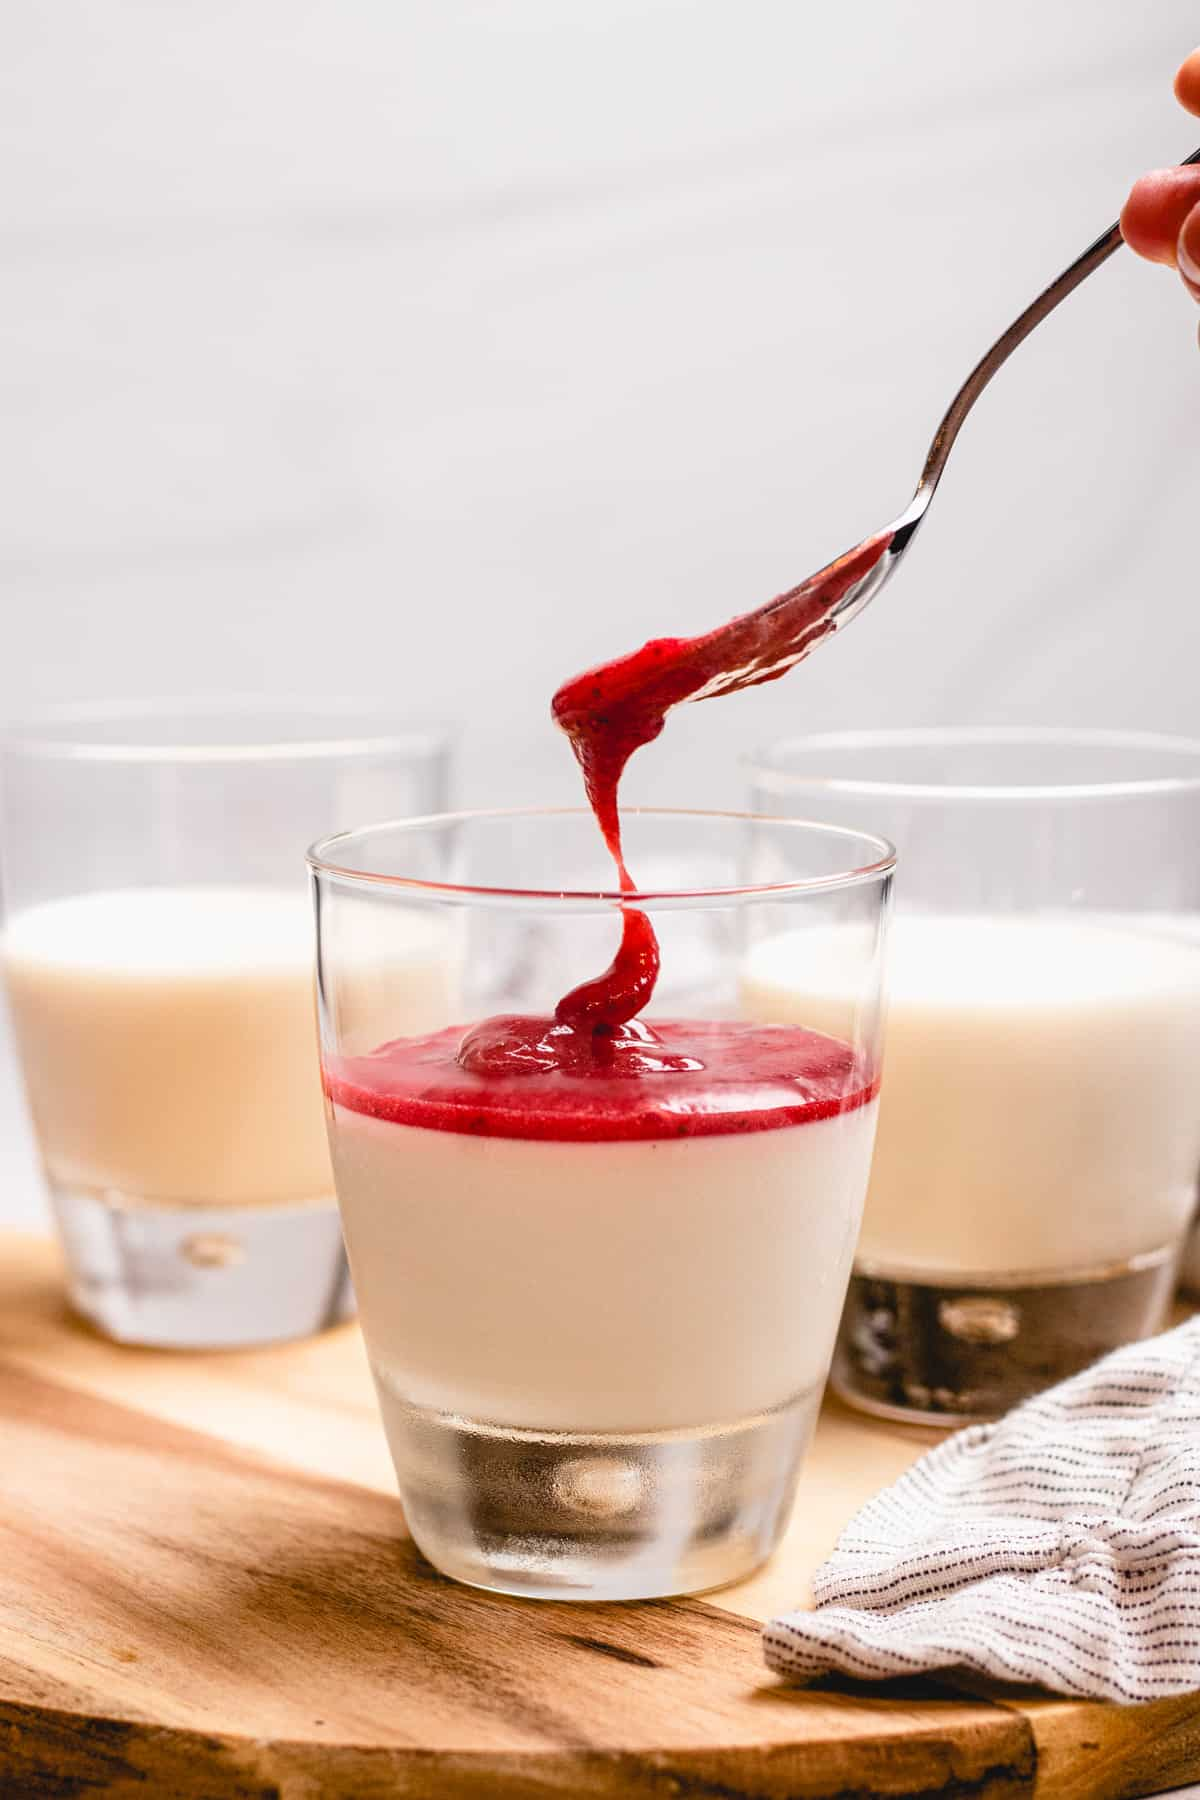 Pouring strawberry sauce in a glass with panna cotta.